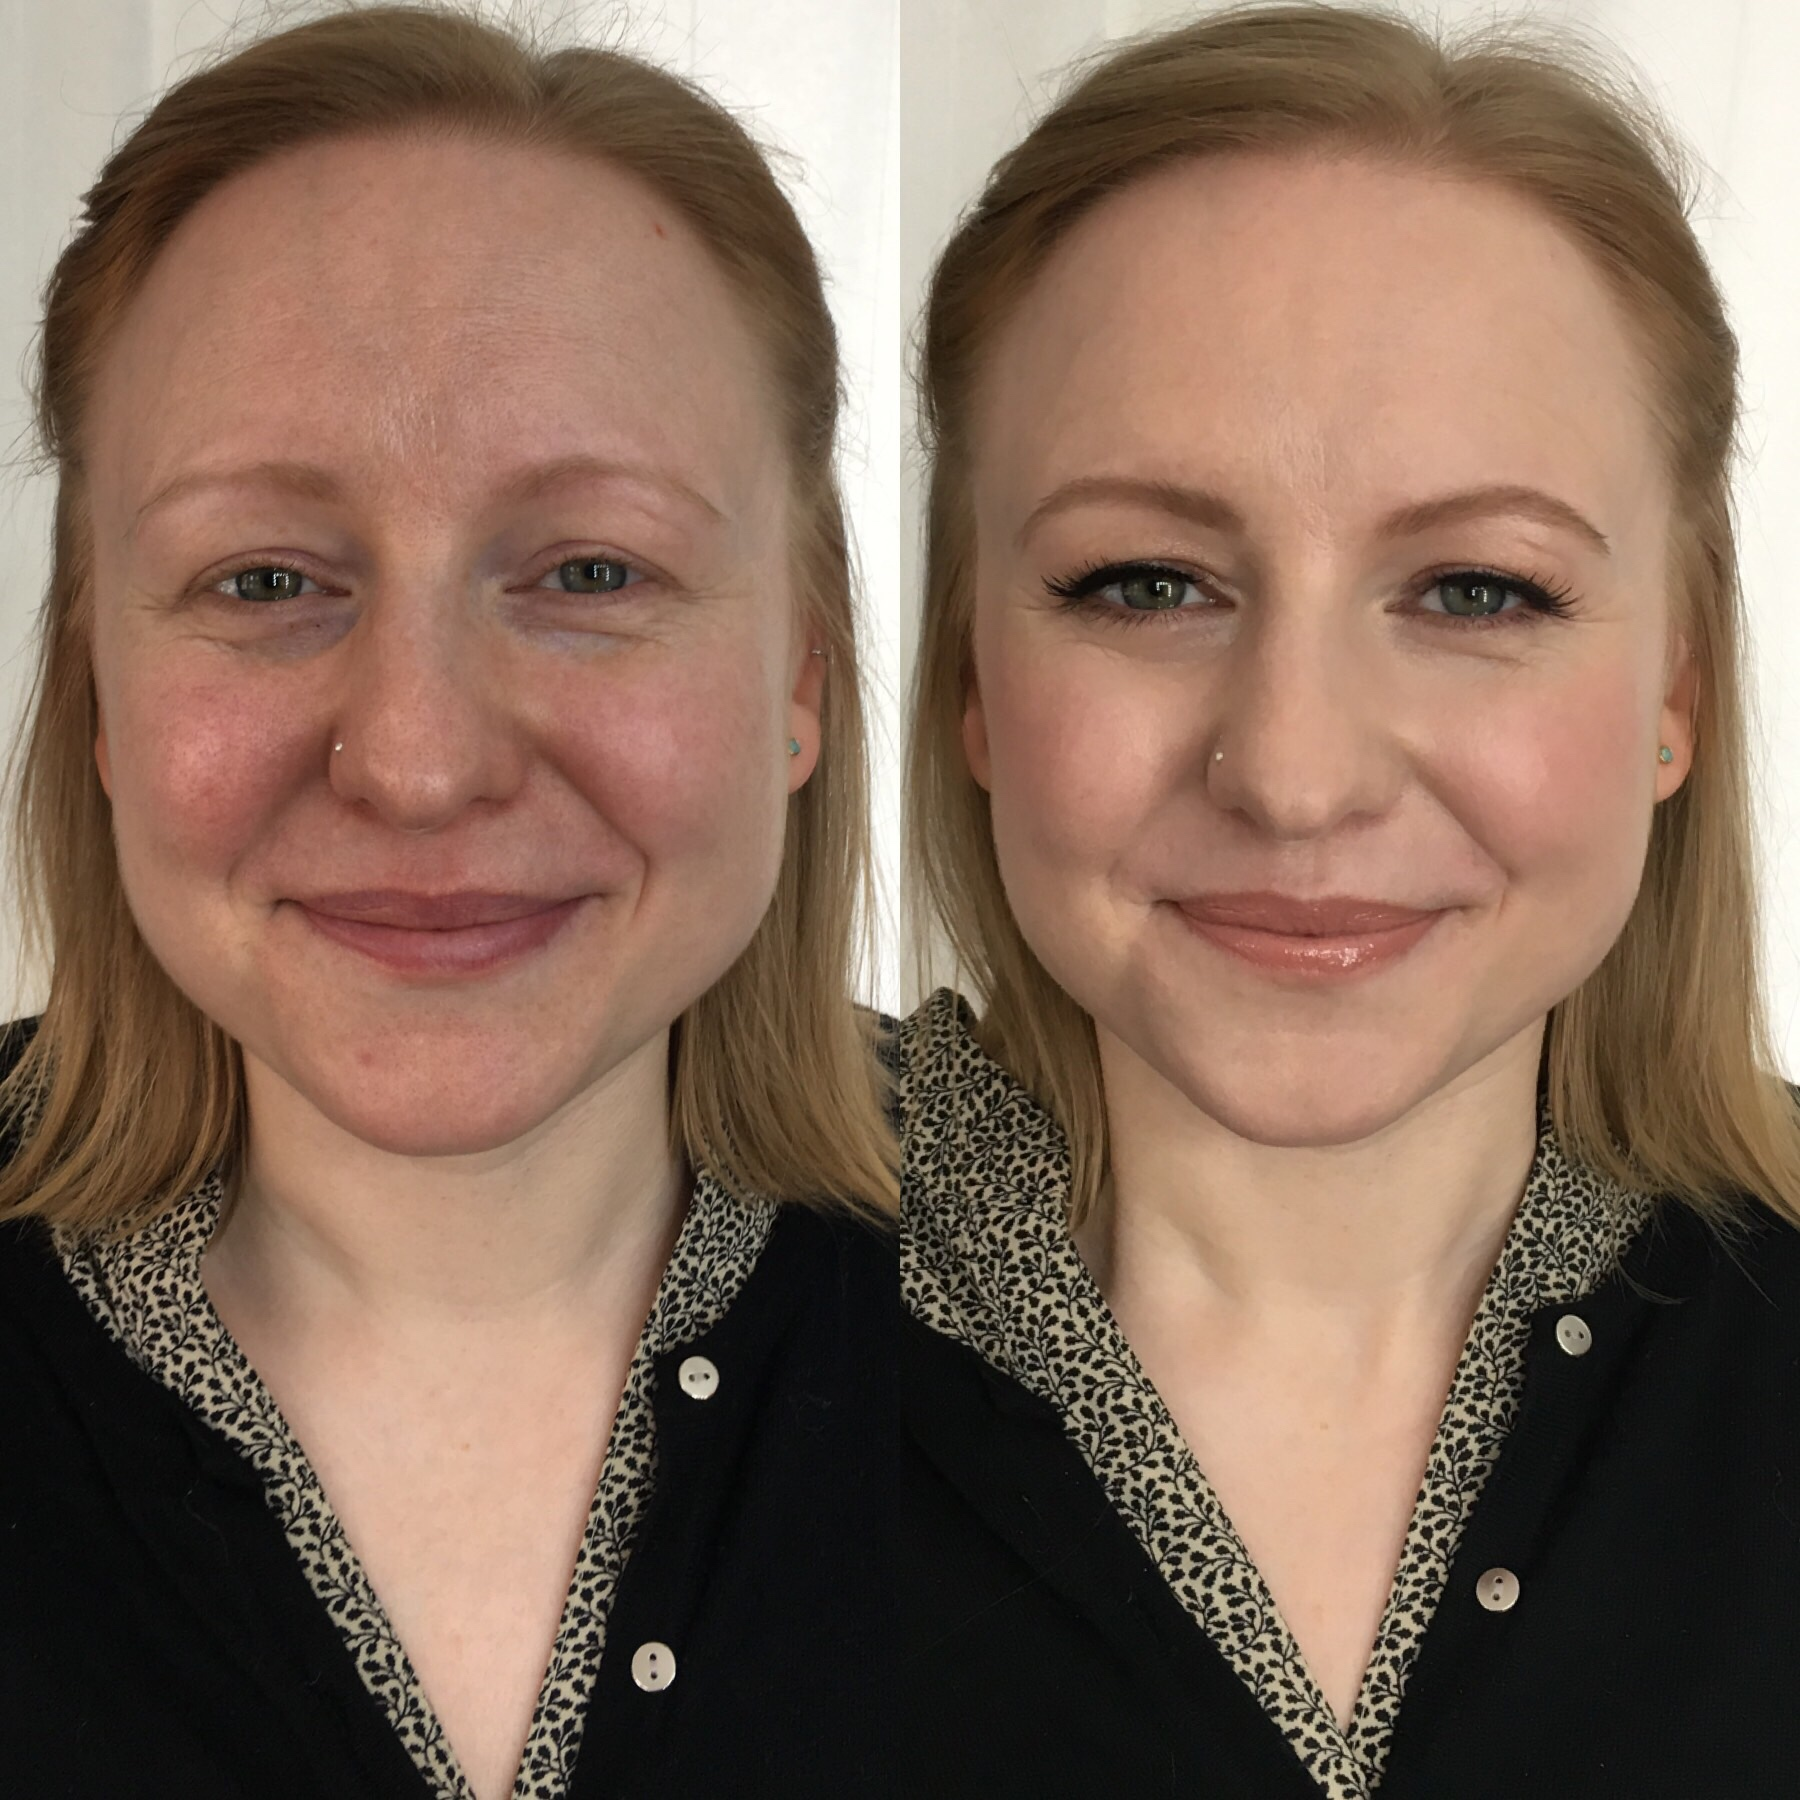 "I met the lovely Eloise from Manchester today, who had travelled for her Bridal makeup trial, ready for her wedding in June. Eloise's wedding theme sounds lovely. Make-up wise - a natural girl so just wanted a ""more polished version of herself."" I used @ctilburymakeup and @bobbibrownuk with some @ardellbeauty false lashes. (False lashes don't have to look false!)"